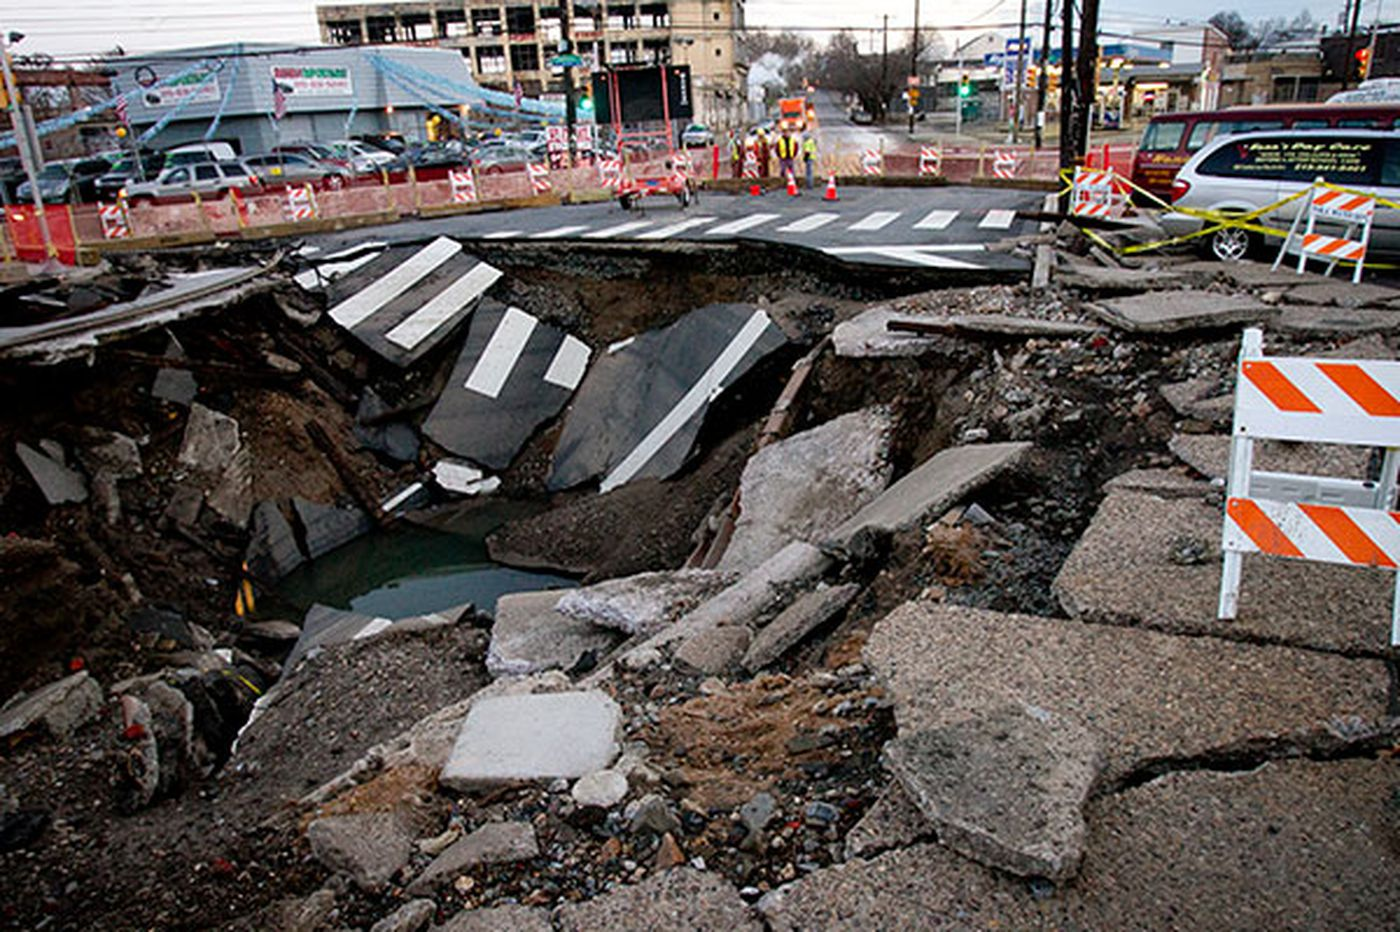 Businesses clean up after water-main break in Frankford